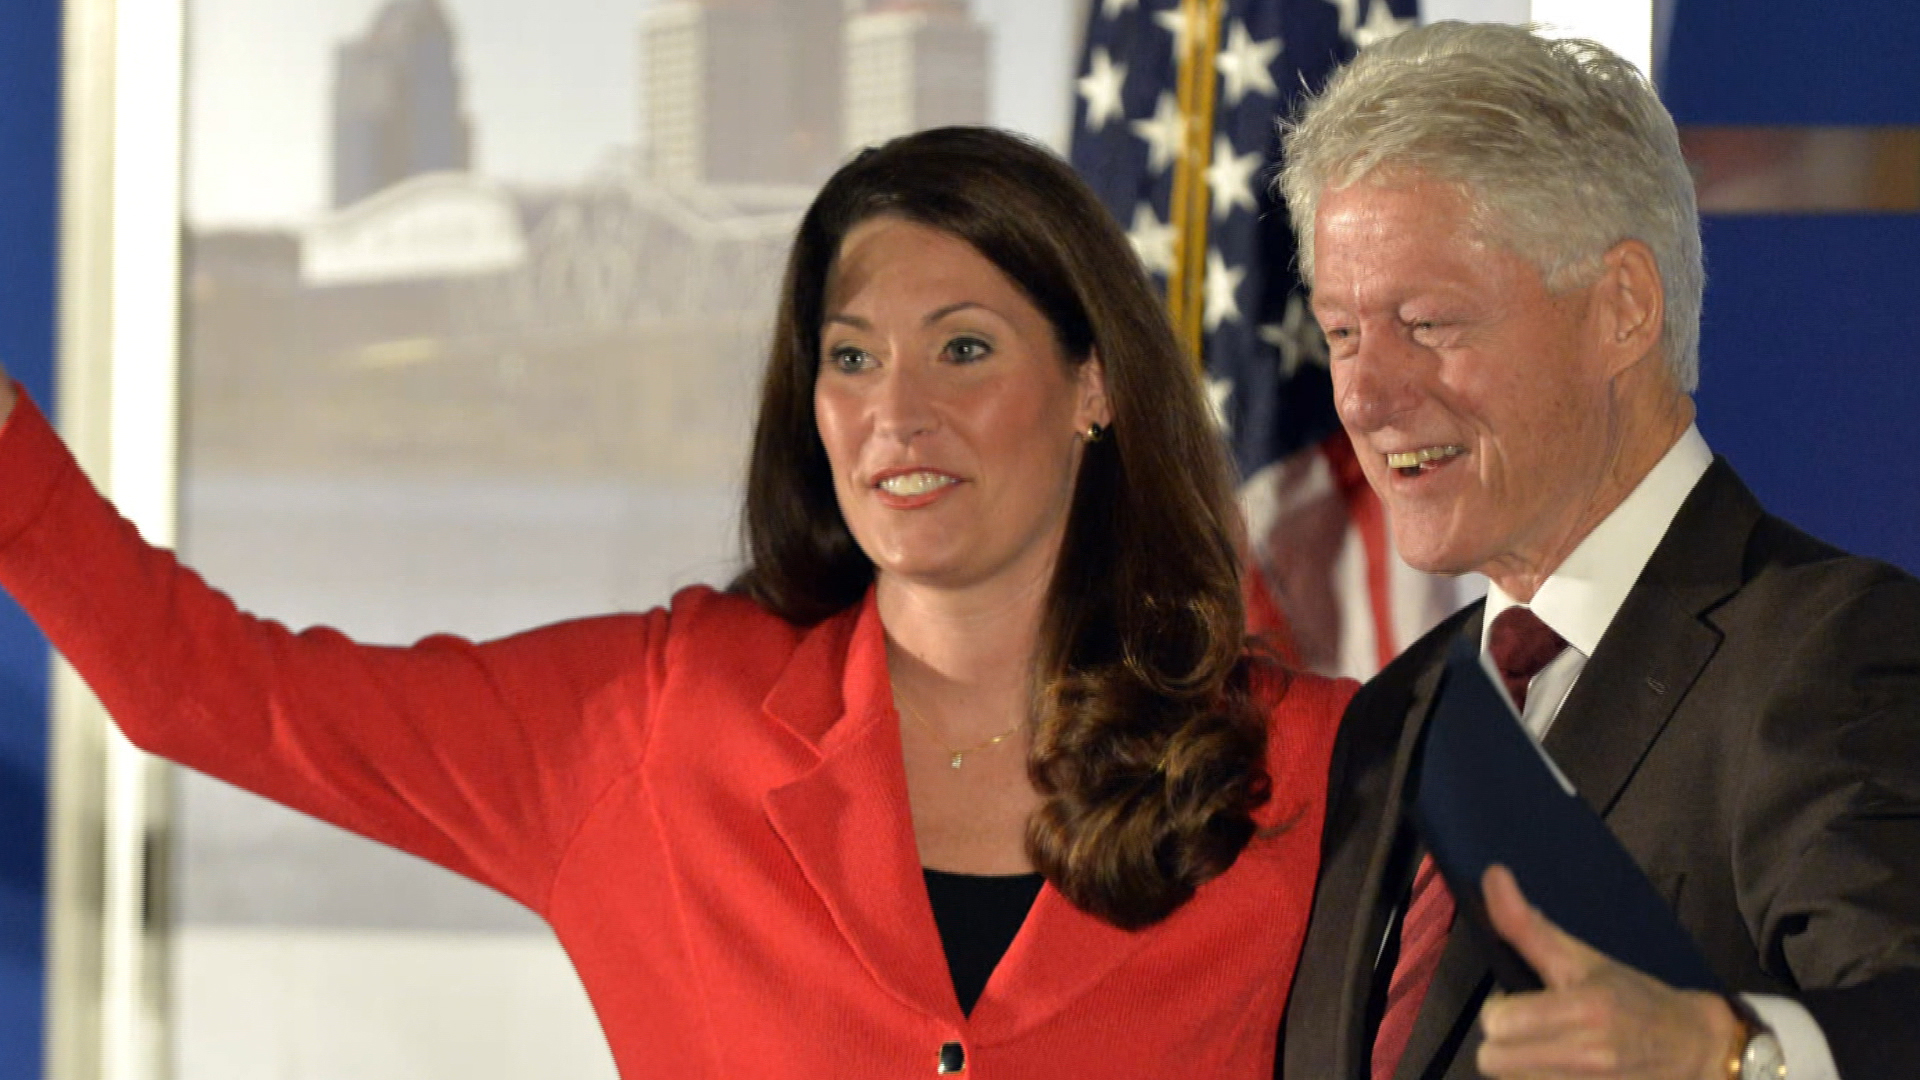 Bill Clinton is back on the campaign trail